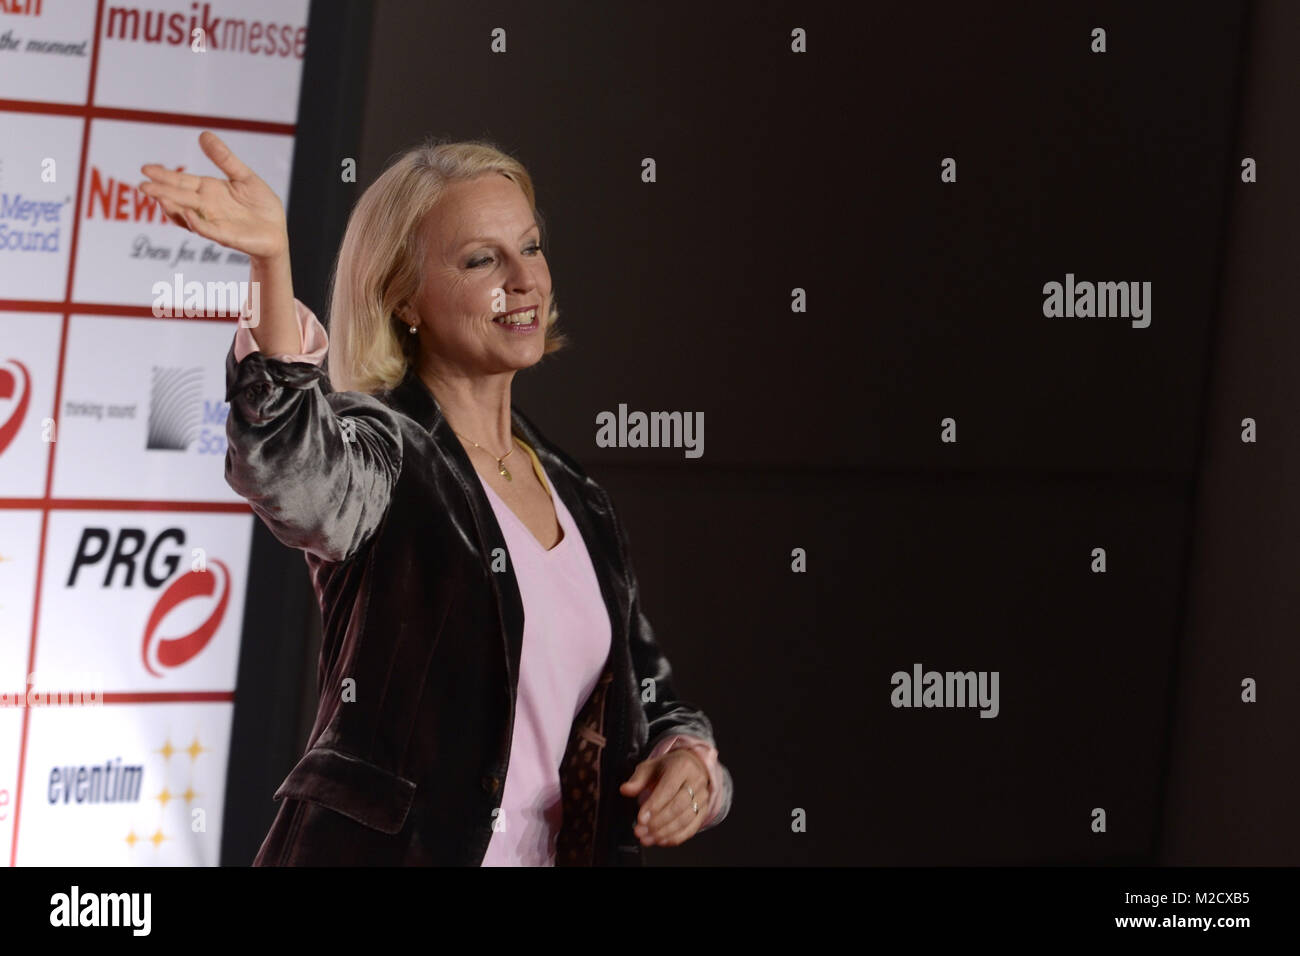 Roter Teppich Frankfurt Lea Sophie Stock Photos And Lea Sophie Stock Images Alamy